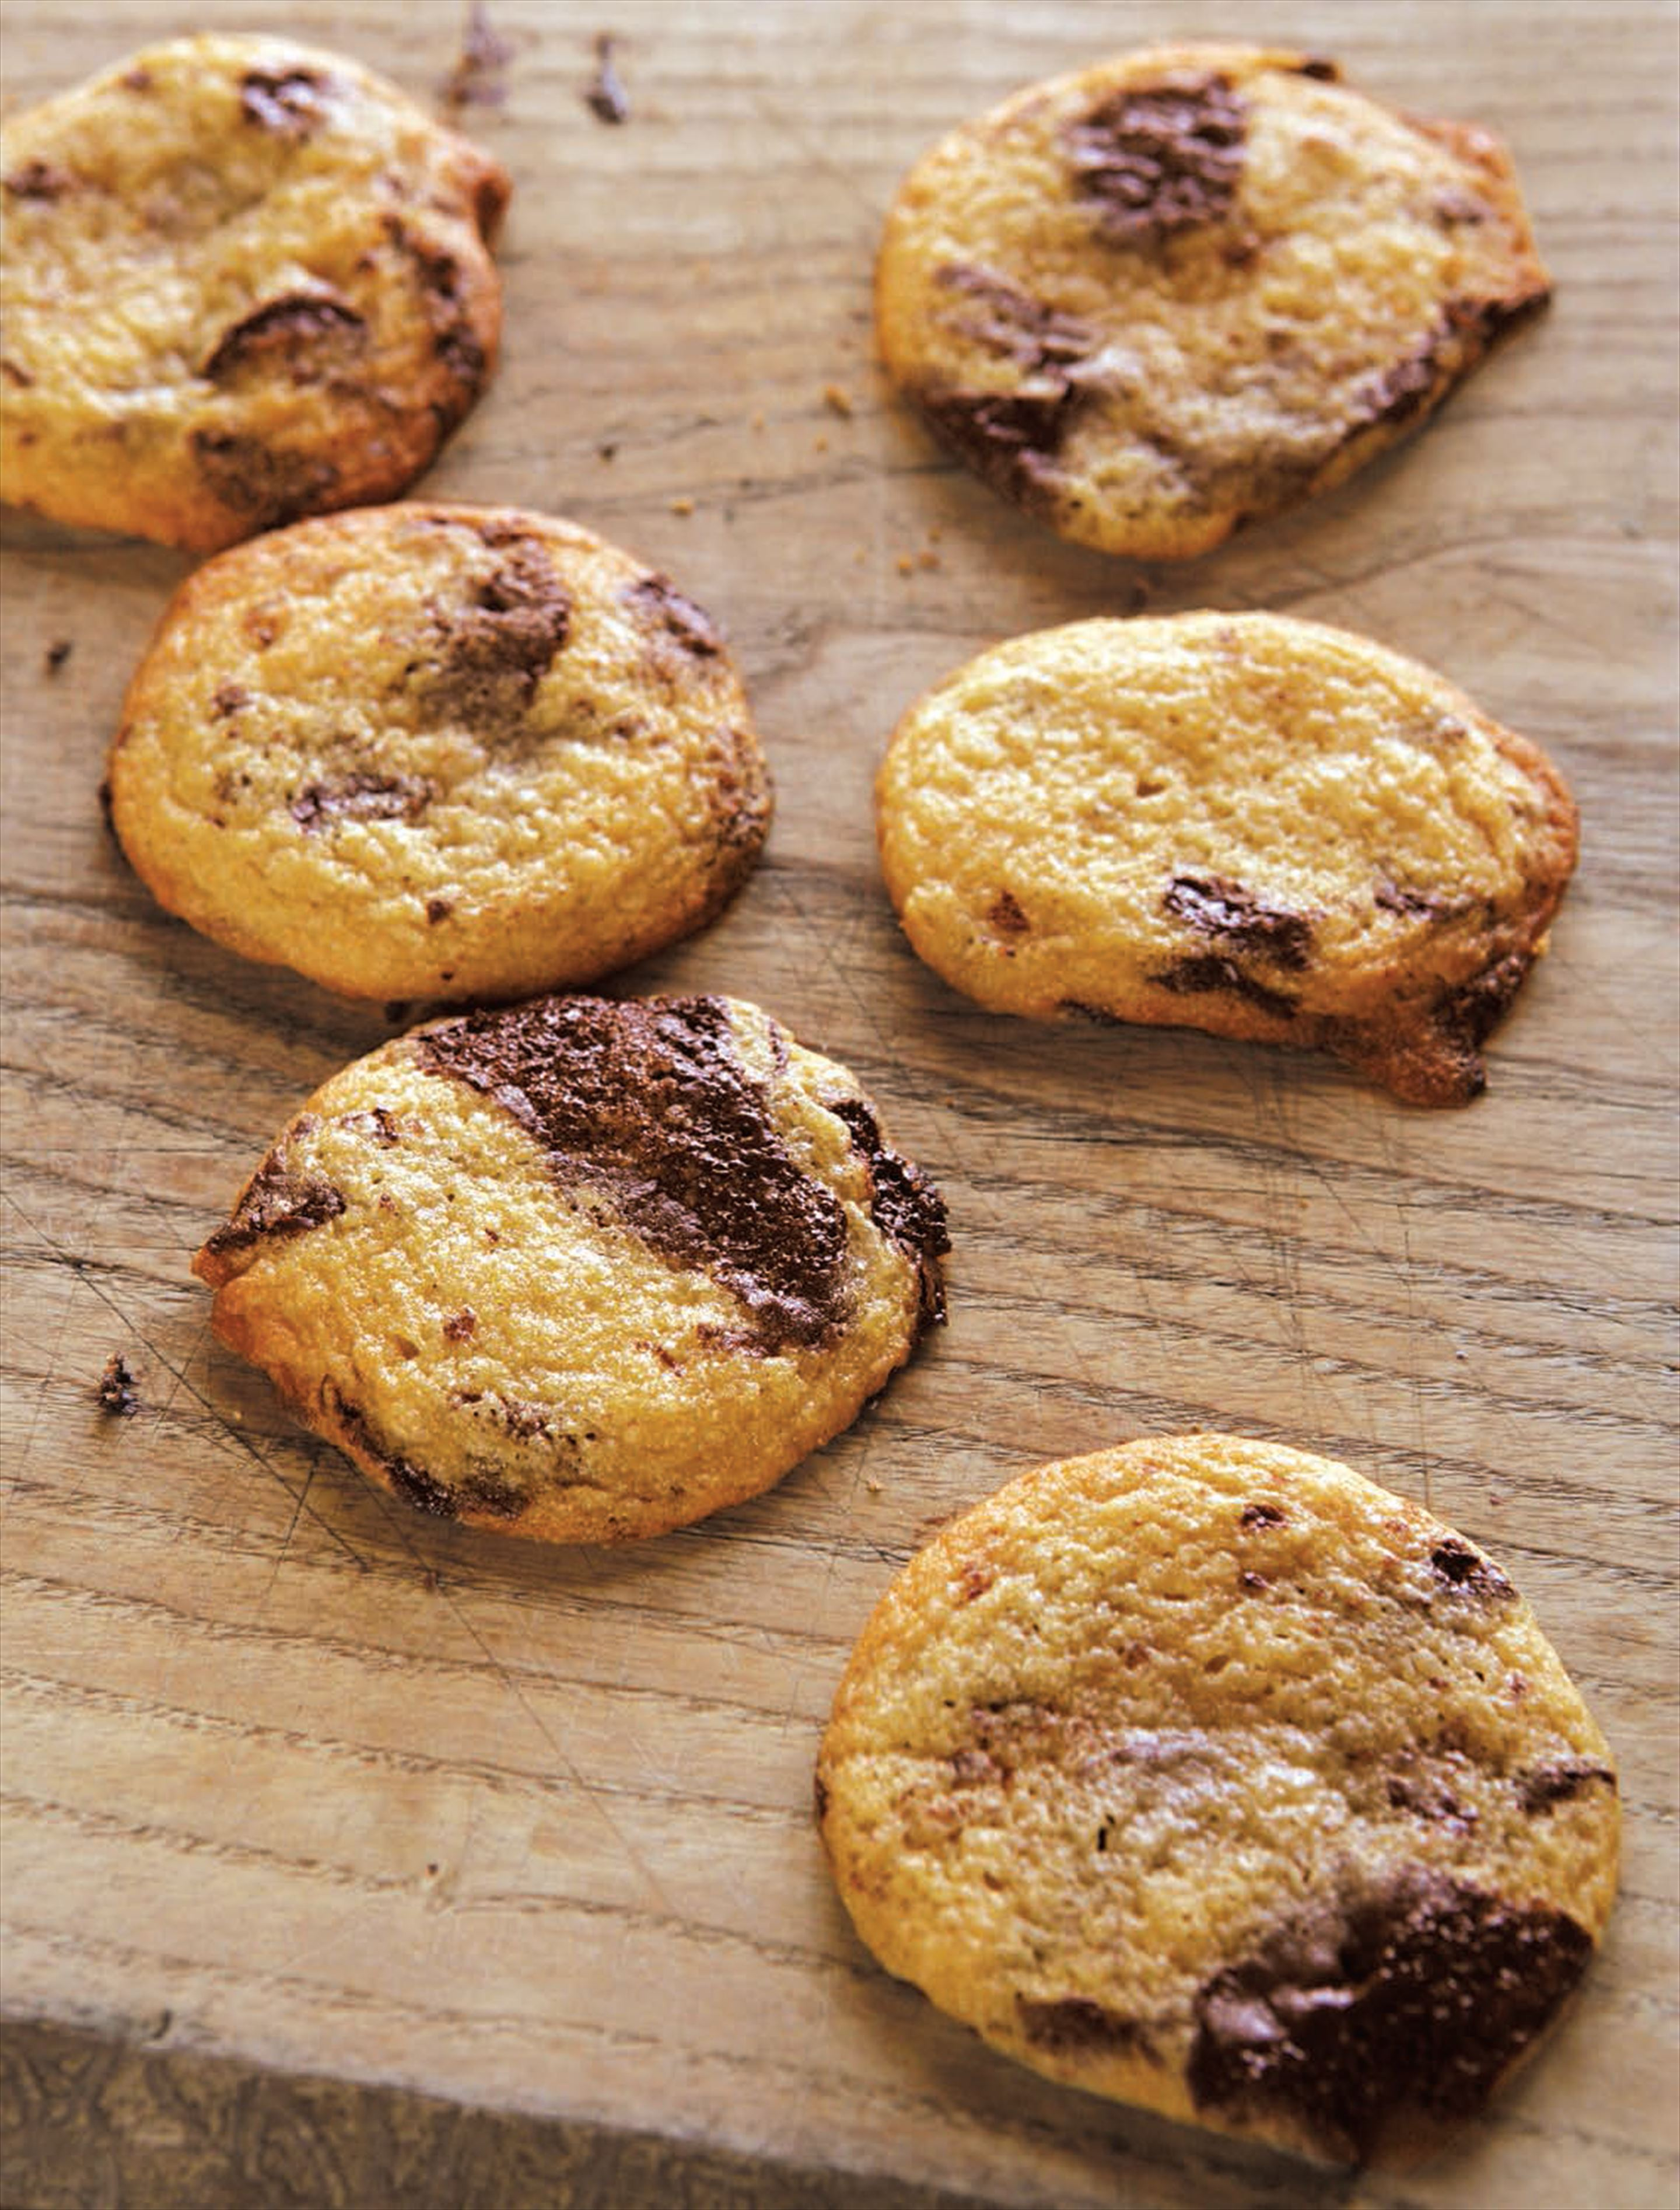 Ten-minute chocolate chip cookies